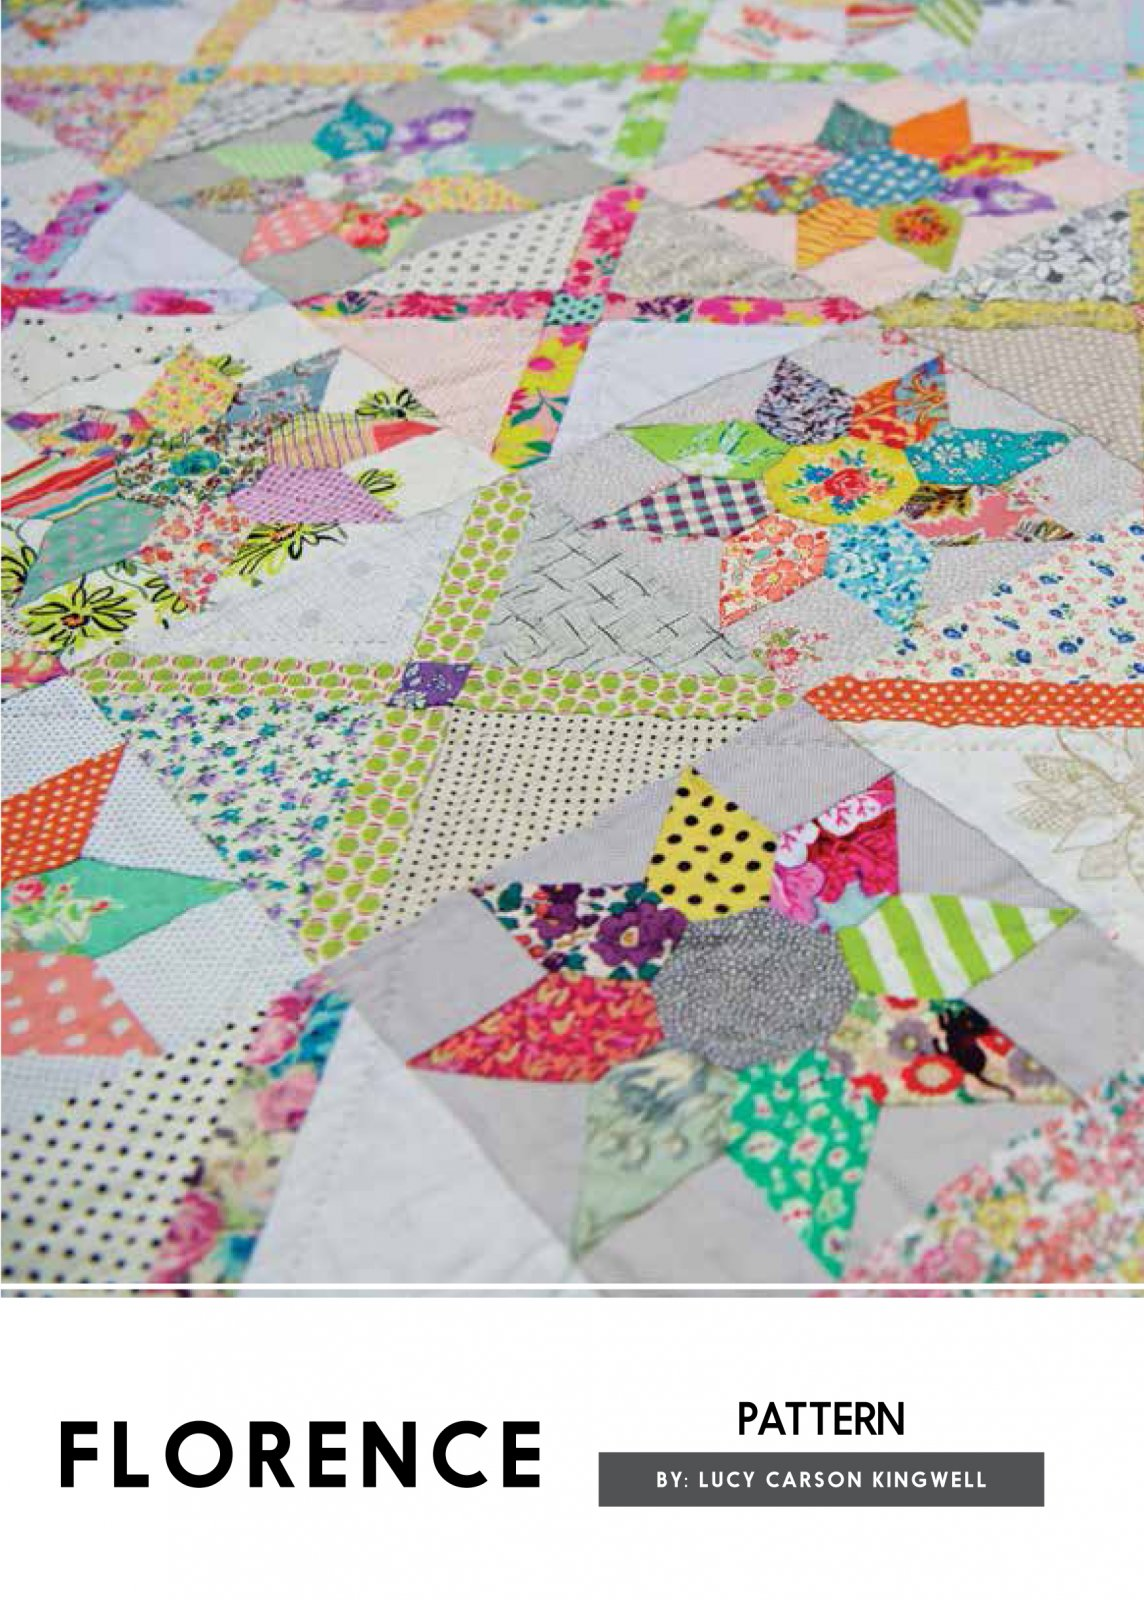 Florence Pattern by Lucy Carson Kingwell for Jen Kingwell Designs